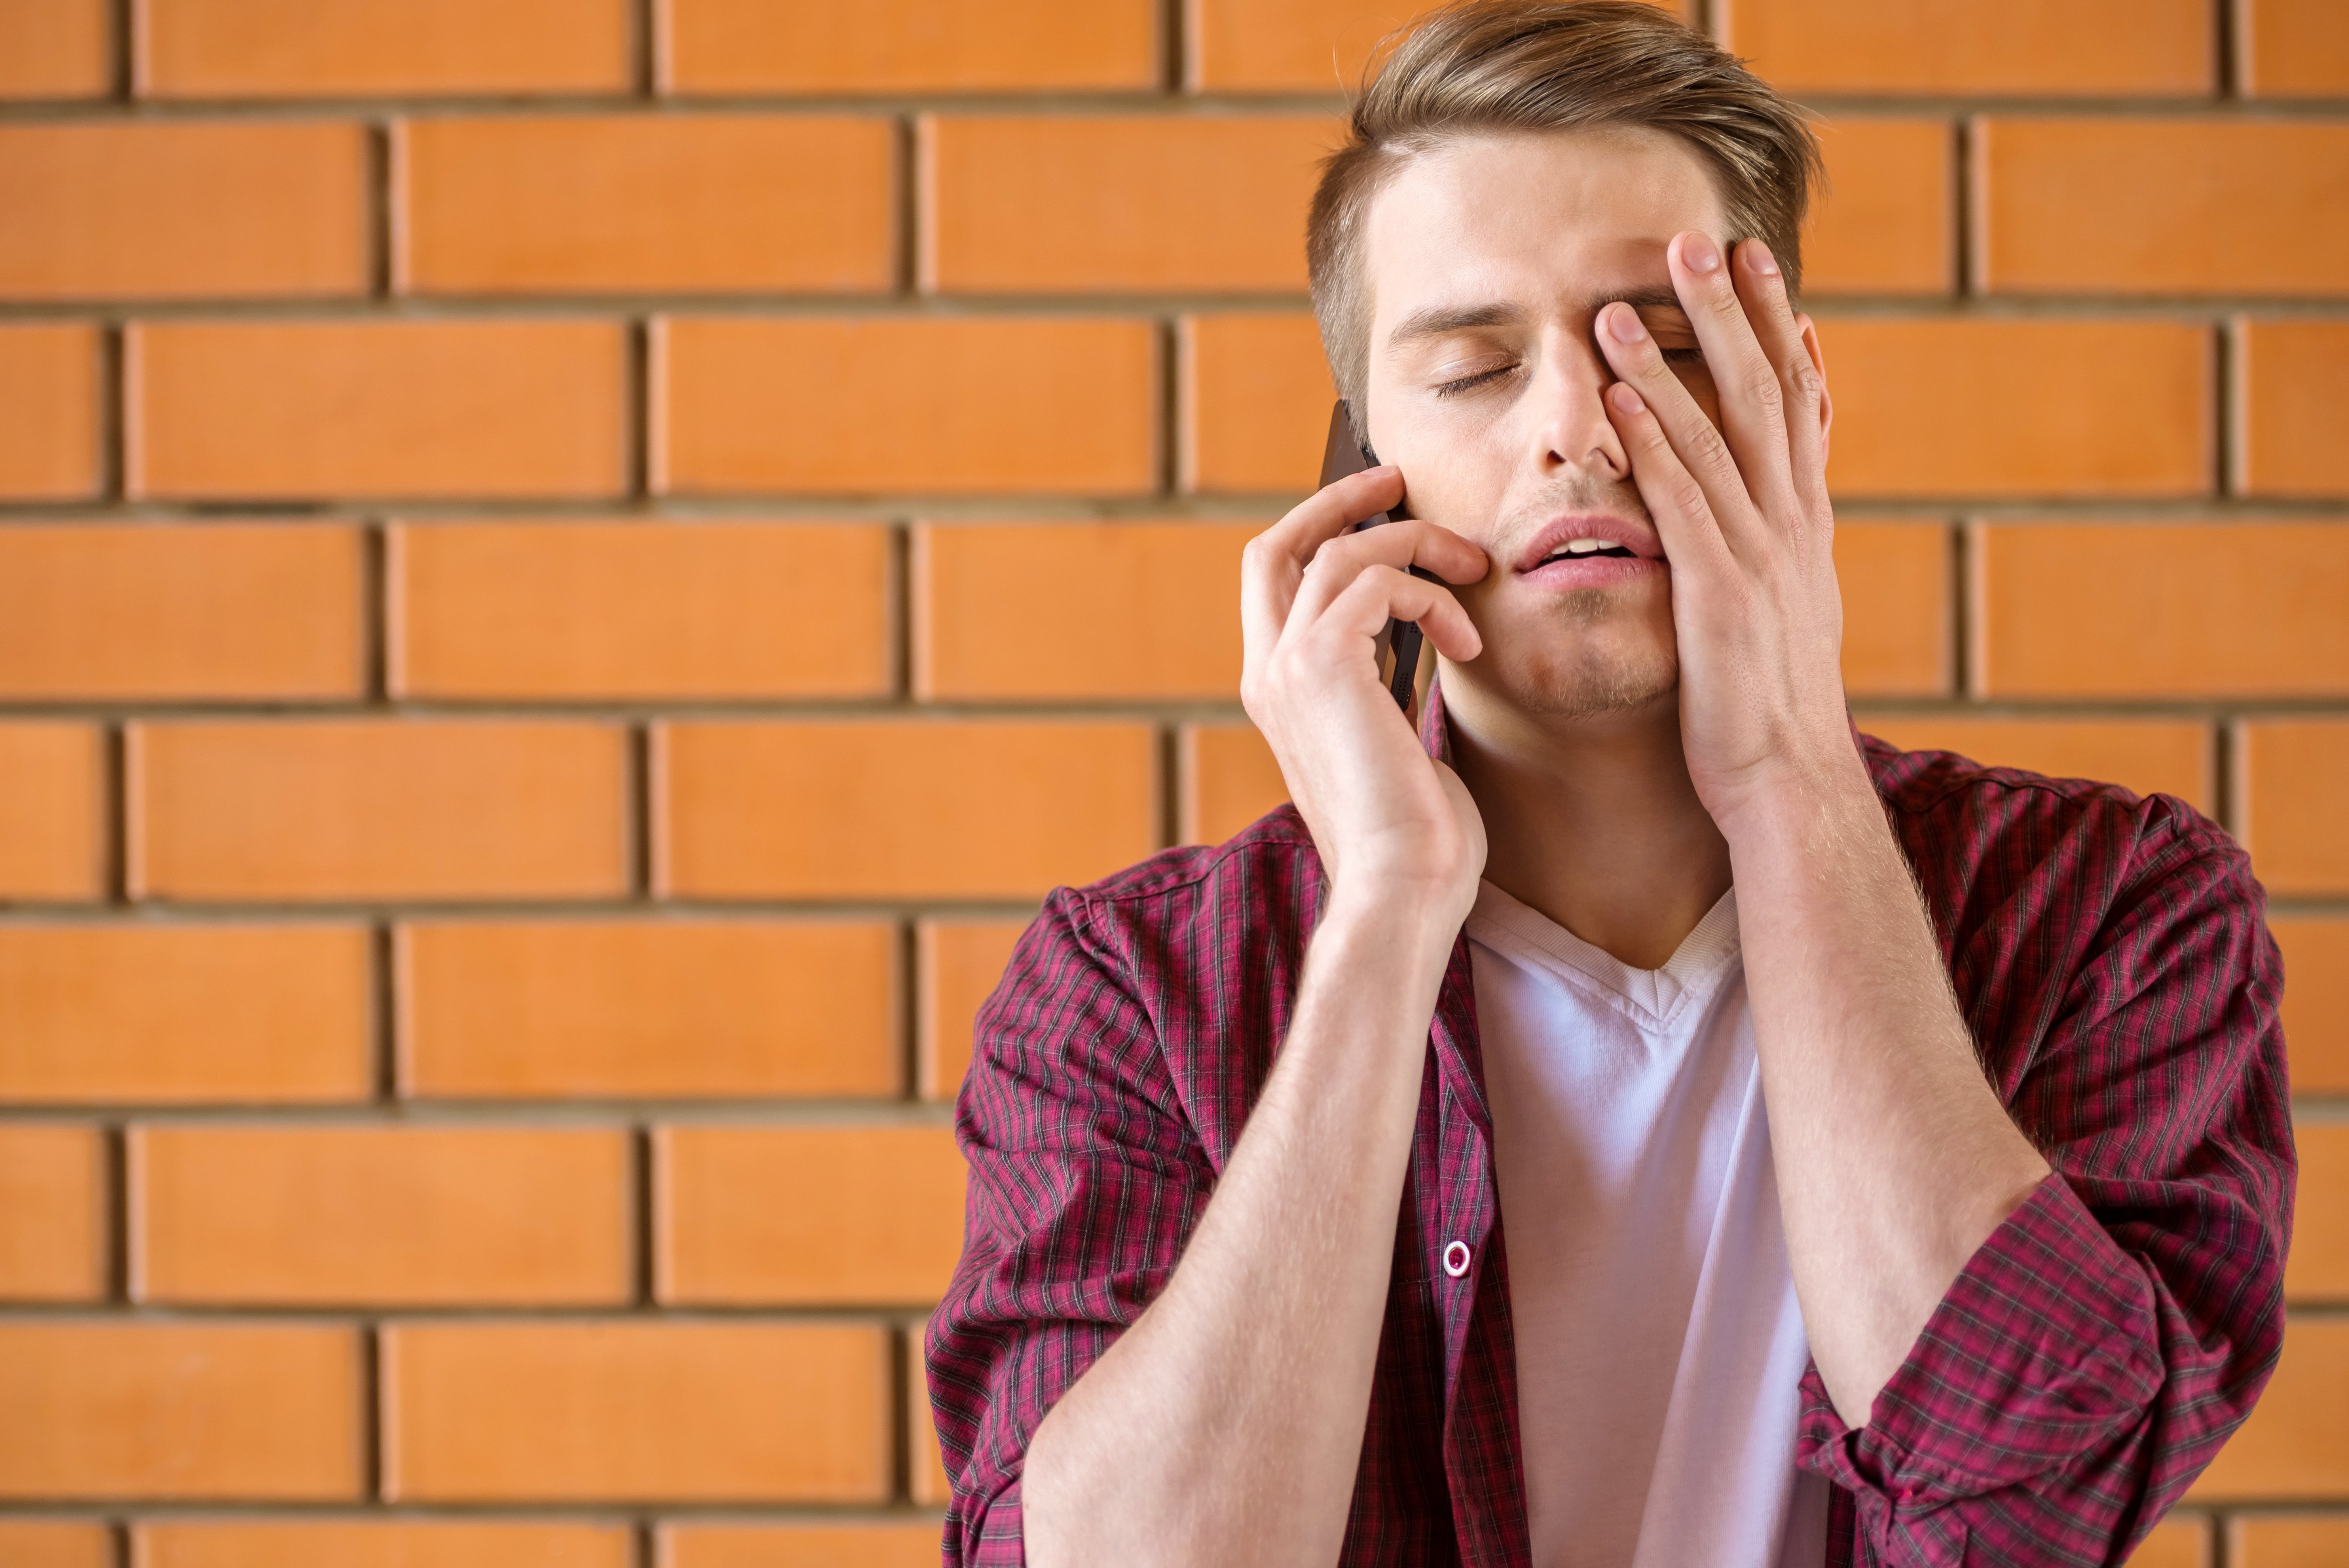 Frustrated man talking on a cellphone. | Source: Shutterstock